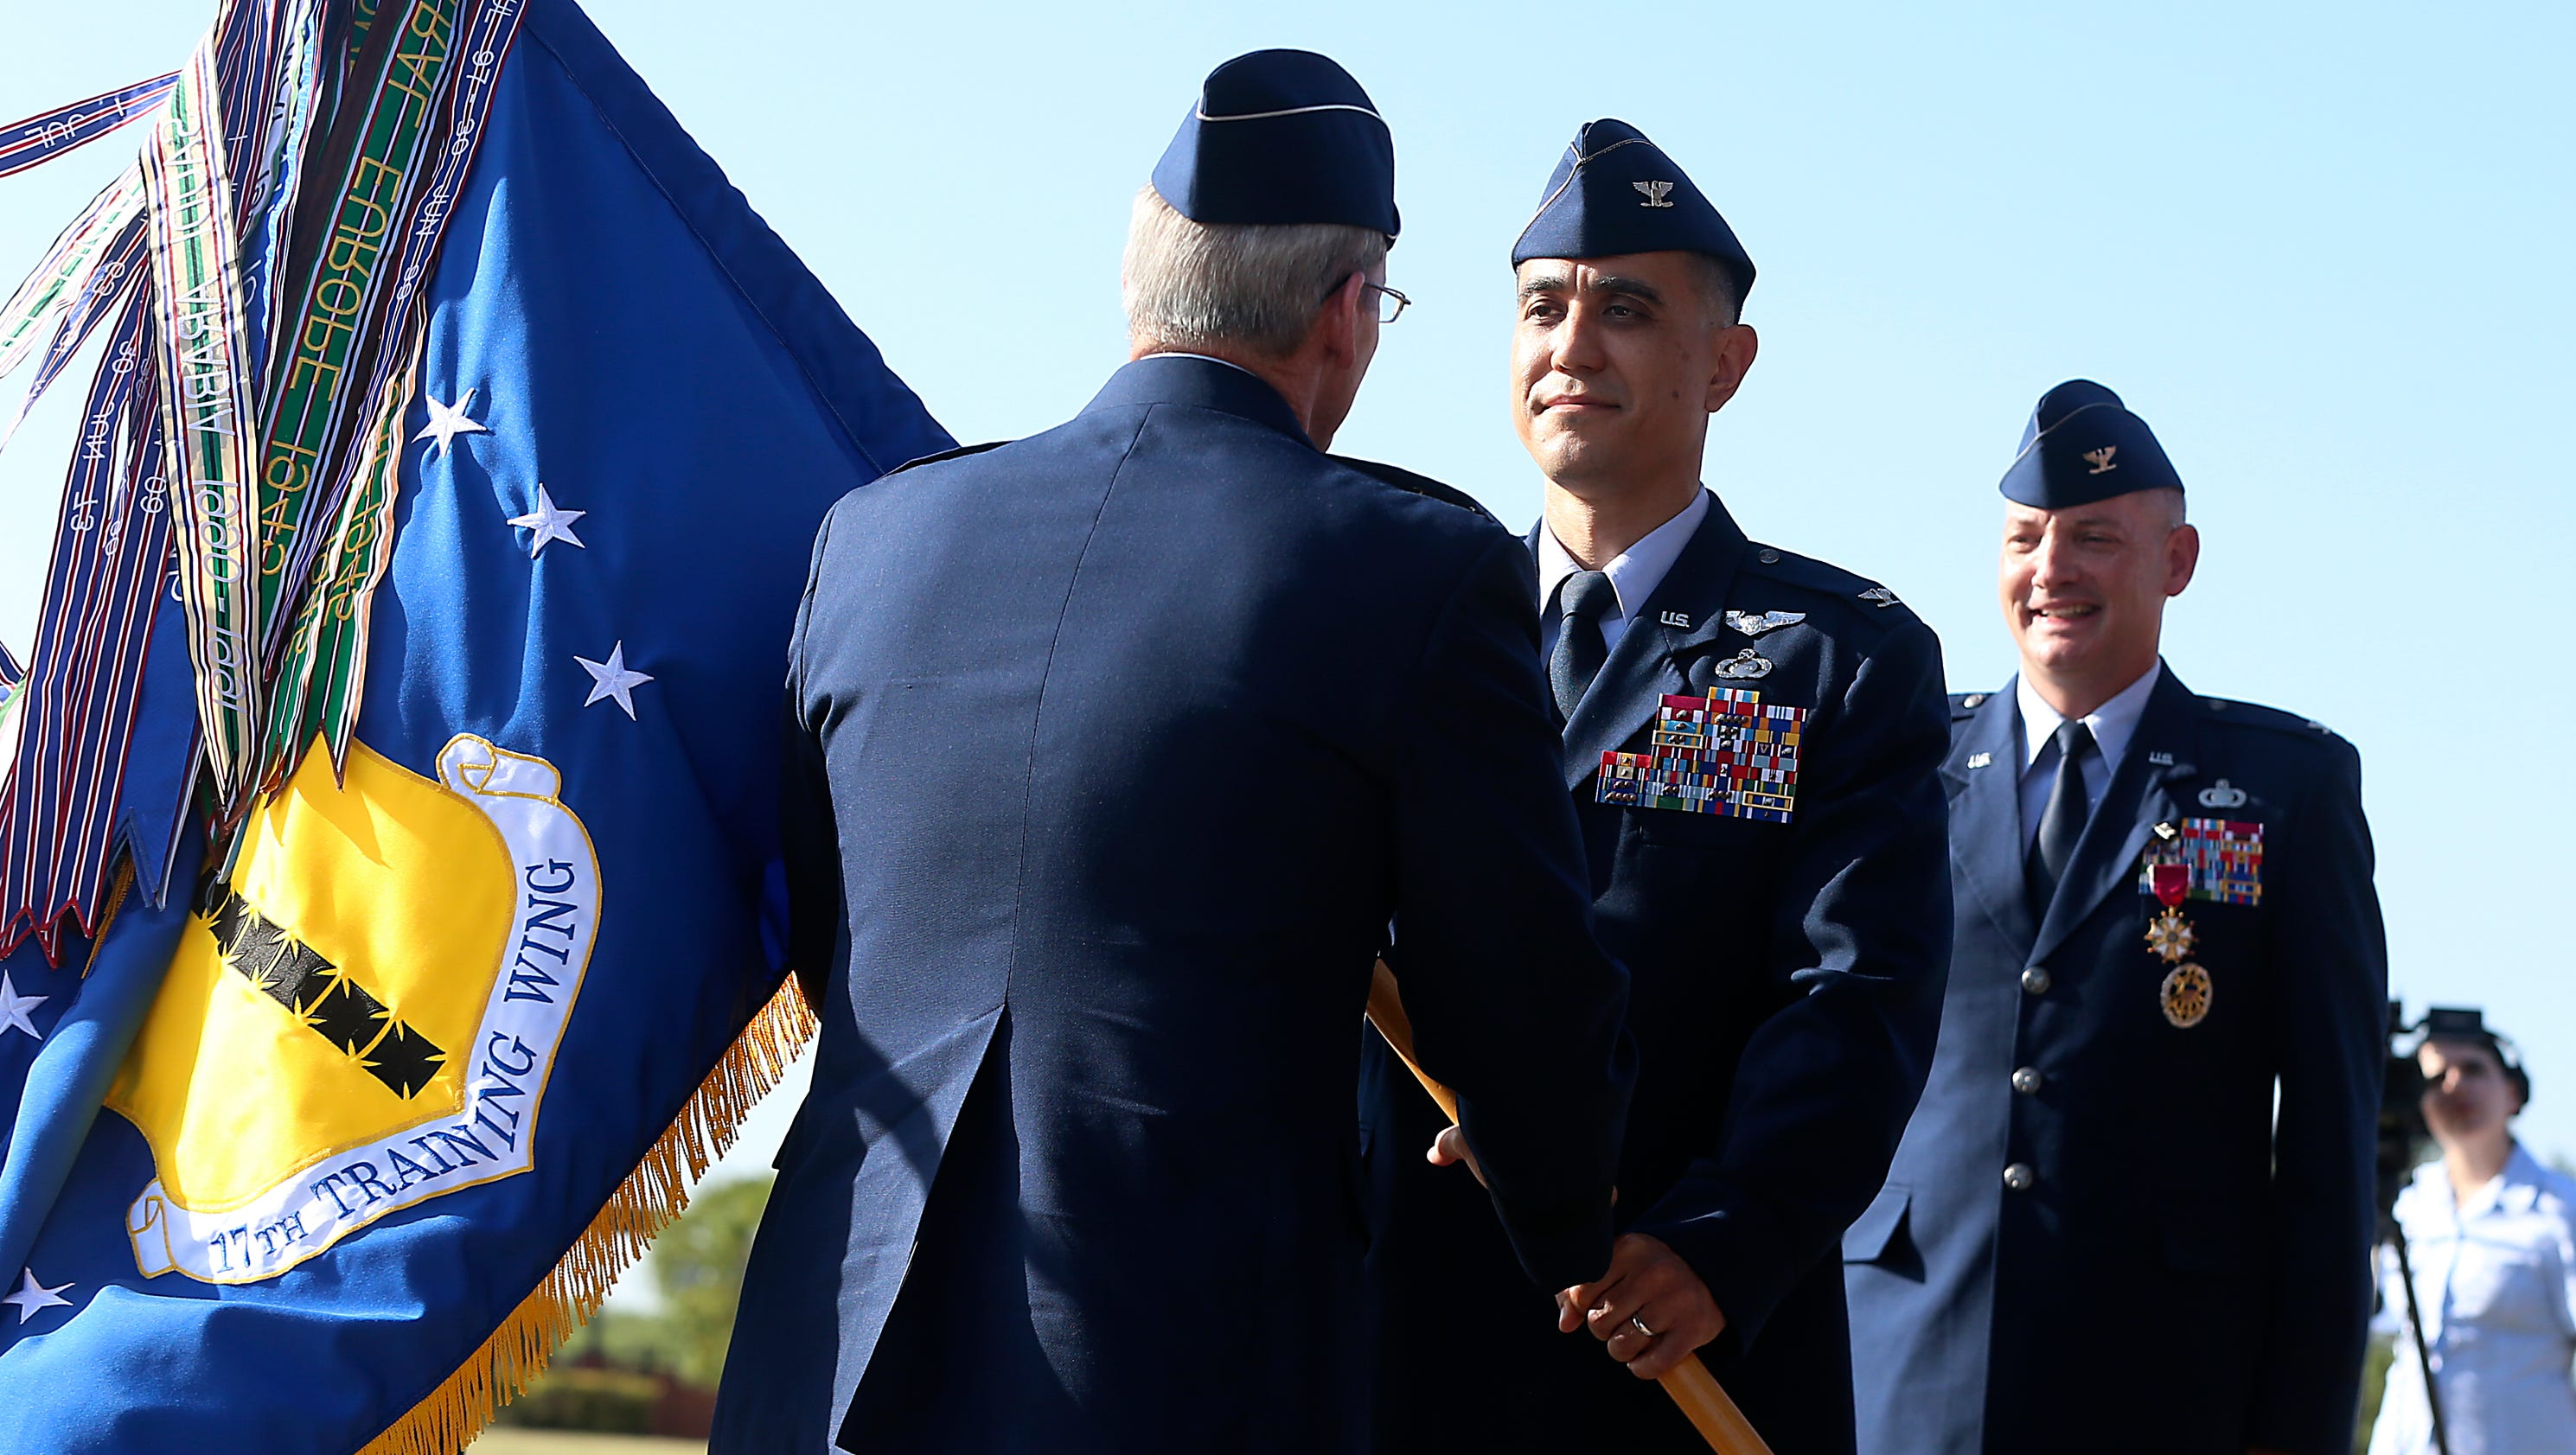 """goodfellow afb chat Air education and training command  goodfellow air force base began  final and complete,"""" said president franklin d roosevelt during the fireside chat on ."""